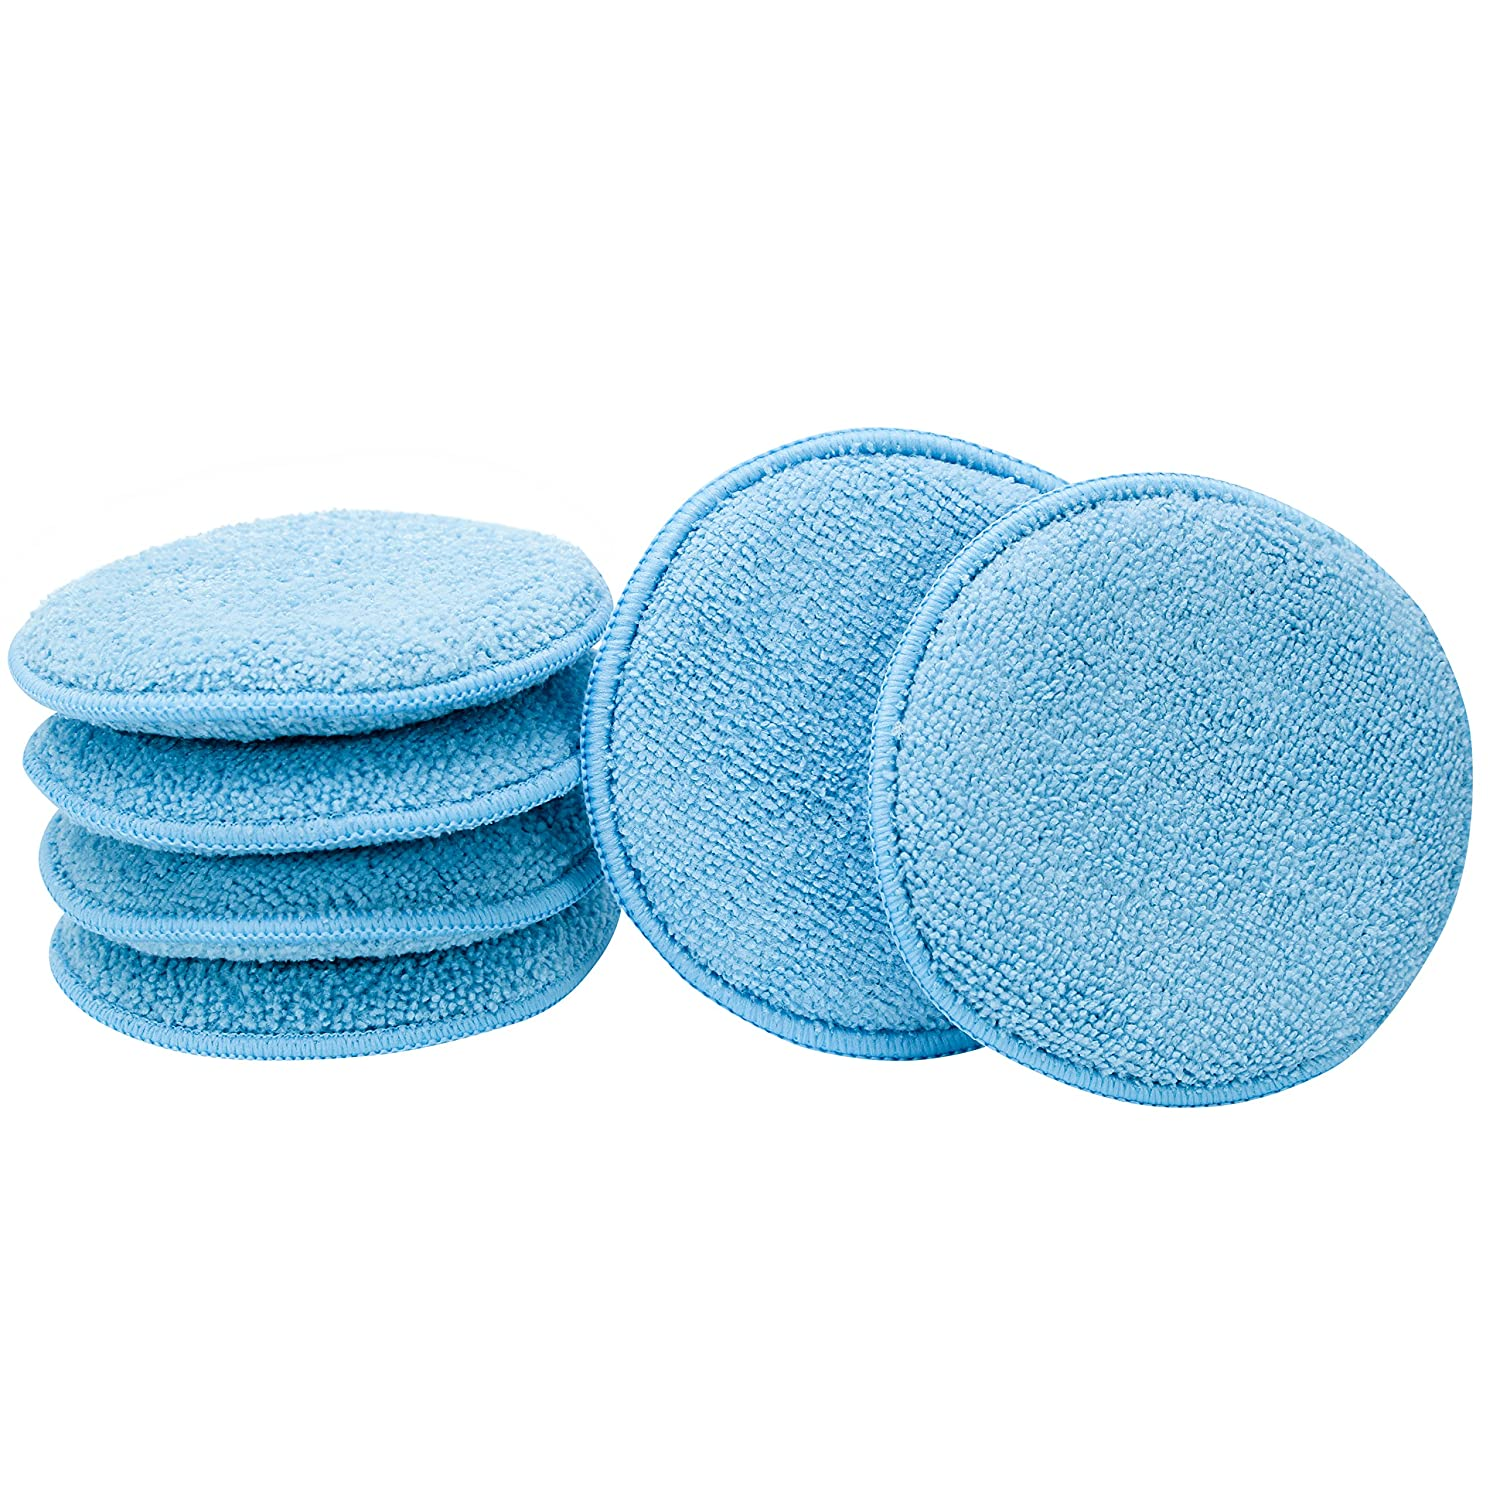 Viking Car Care Microfiber Applicator Pads Blue 6 Pack